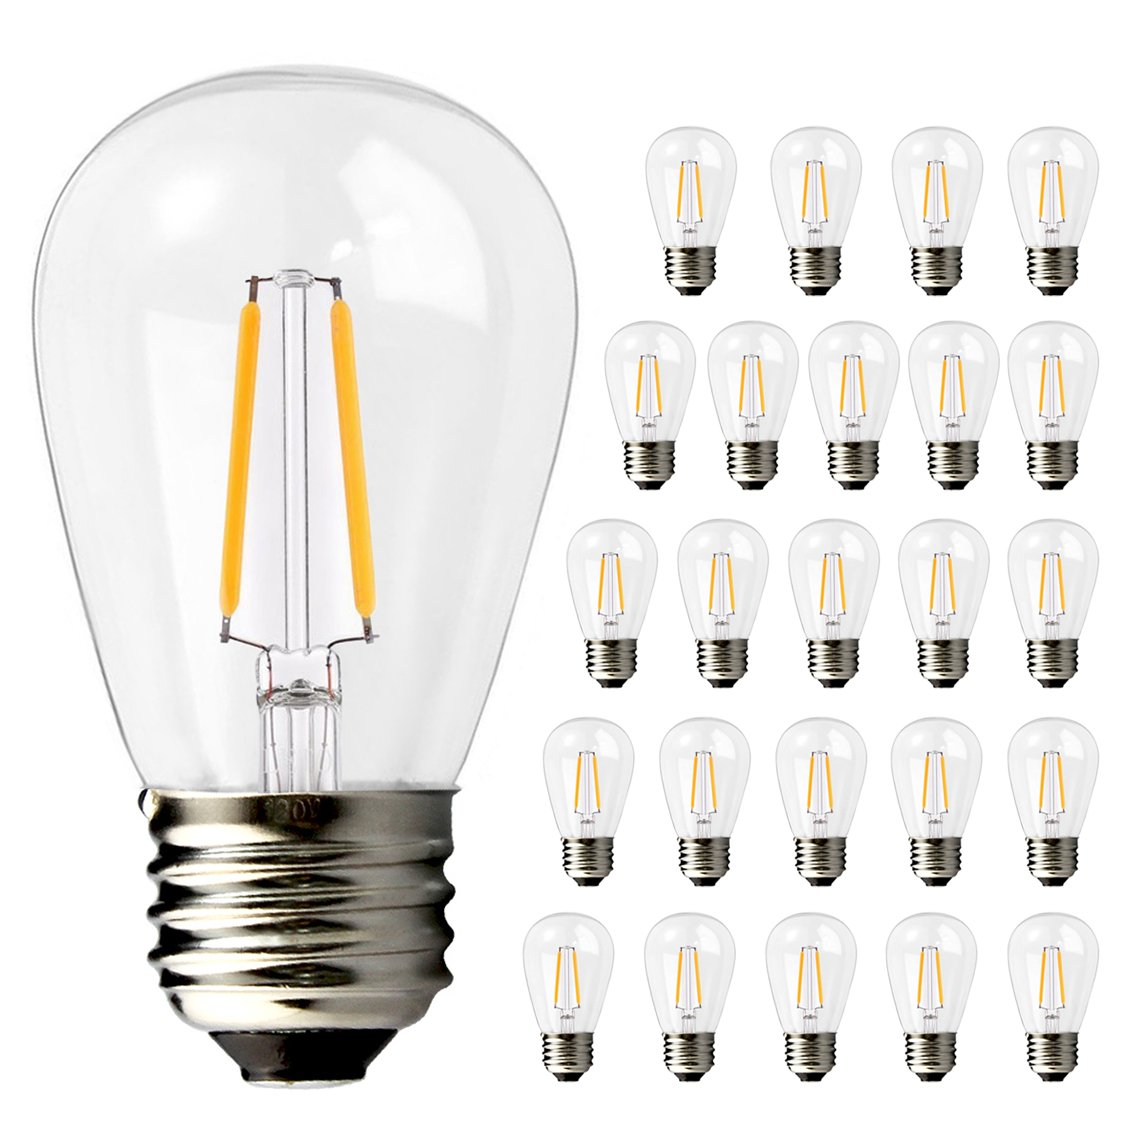 Brimax 2w S14 Led Filament Light Bulbs For Commercial Outdoor Incandescent Bulb Diagram Free Download Wiring String Lights E26 Base 2700k Warm White Dimmable 11w 20w 11s14 Edison